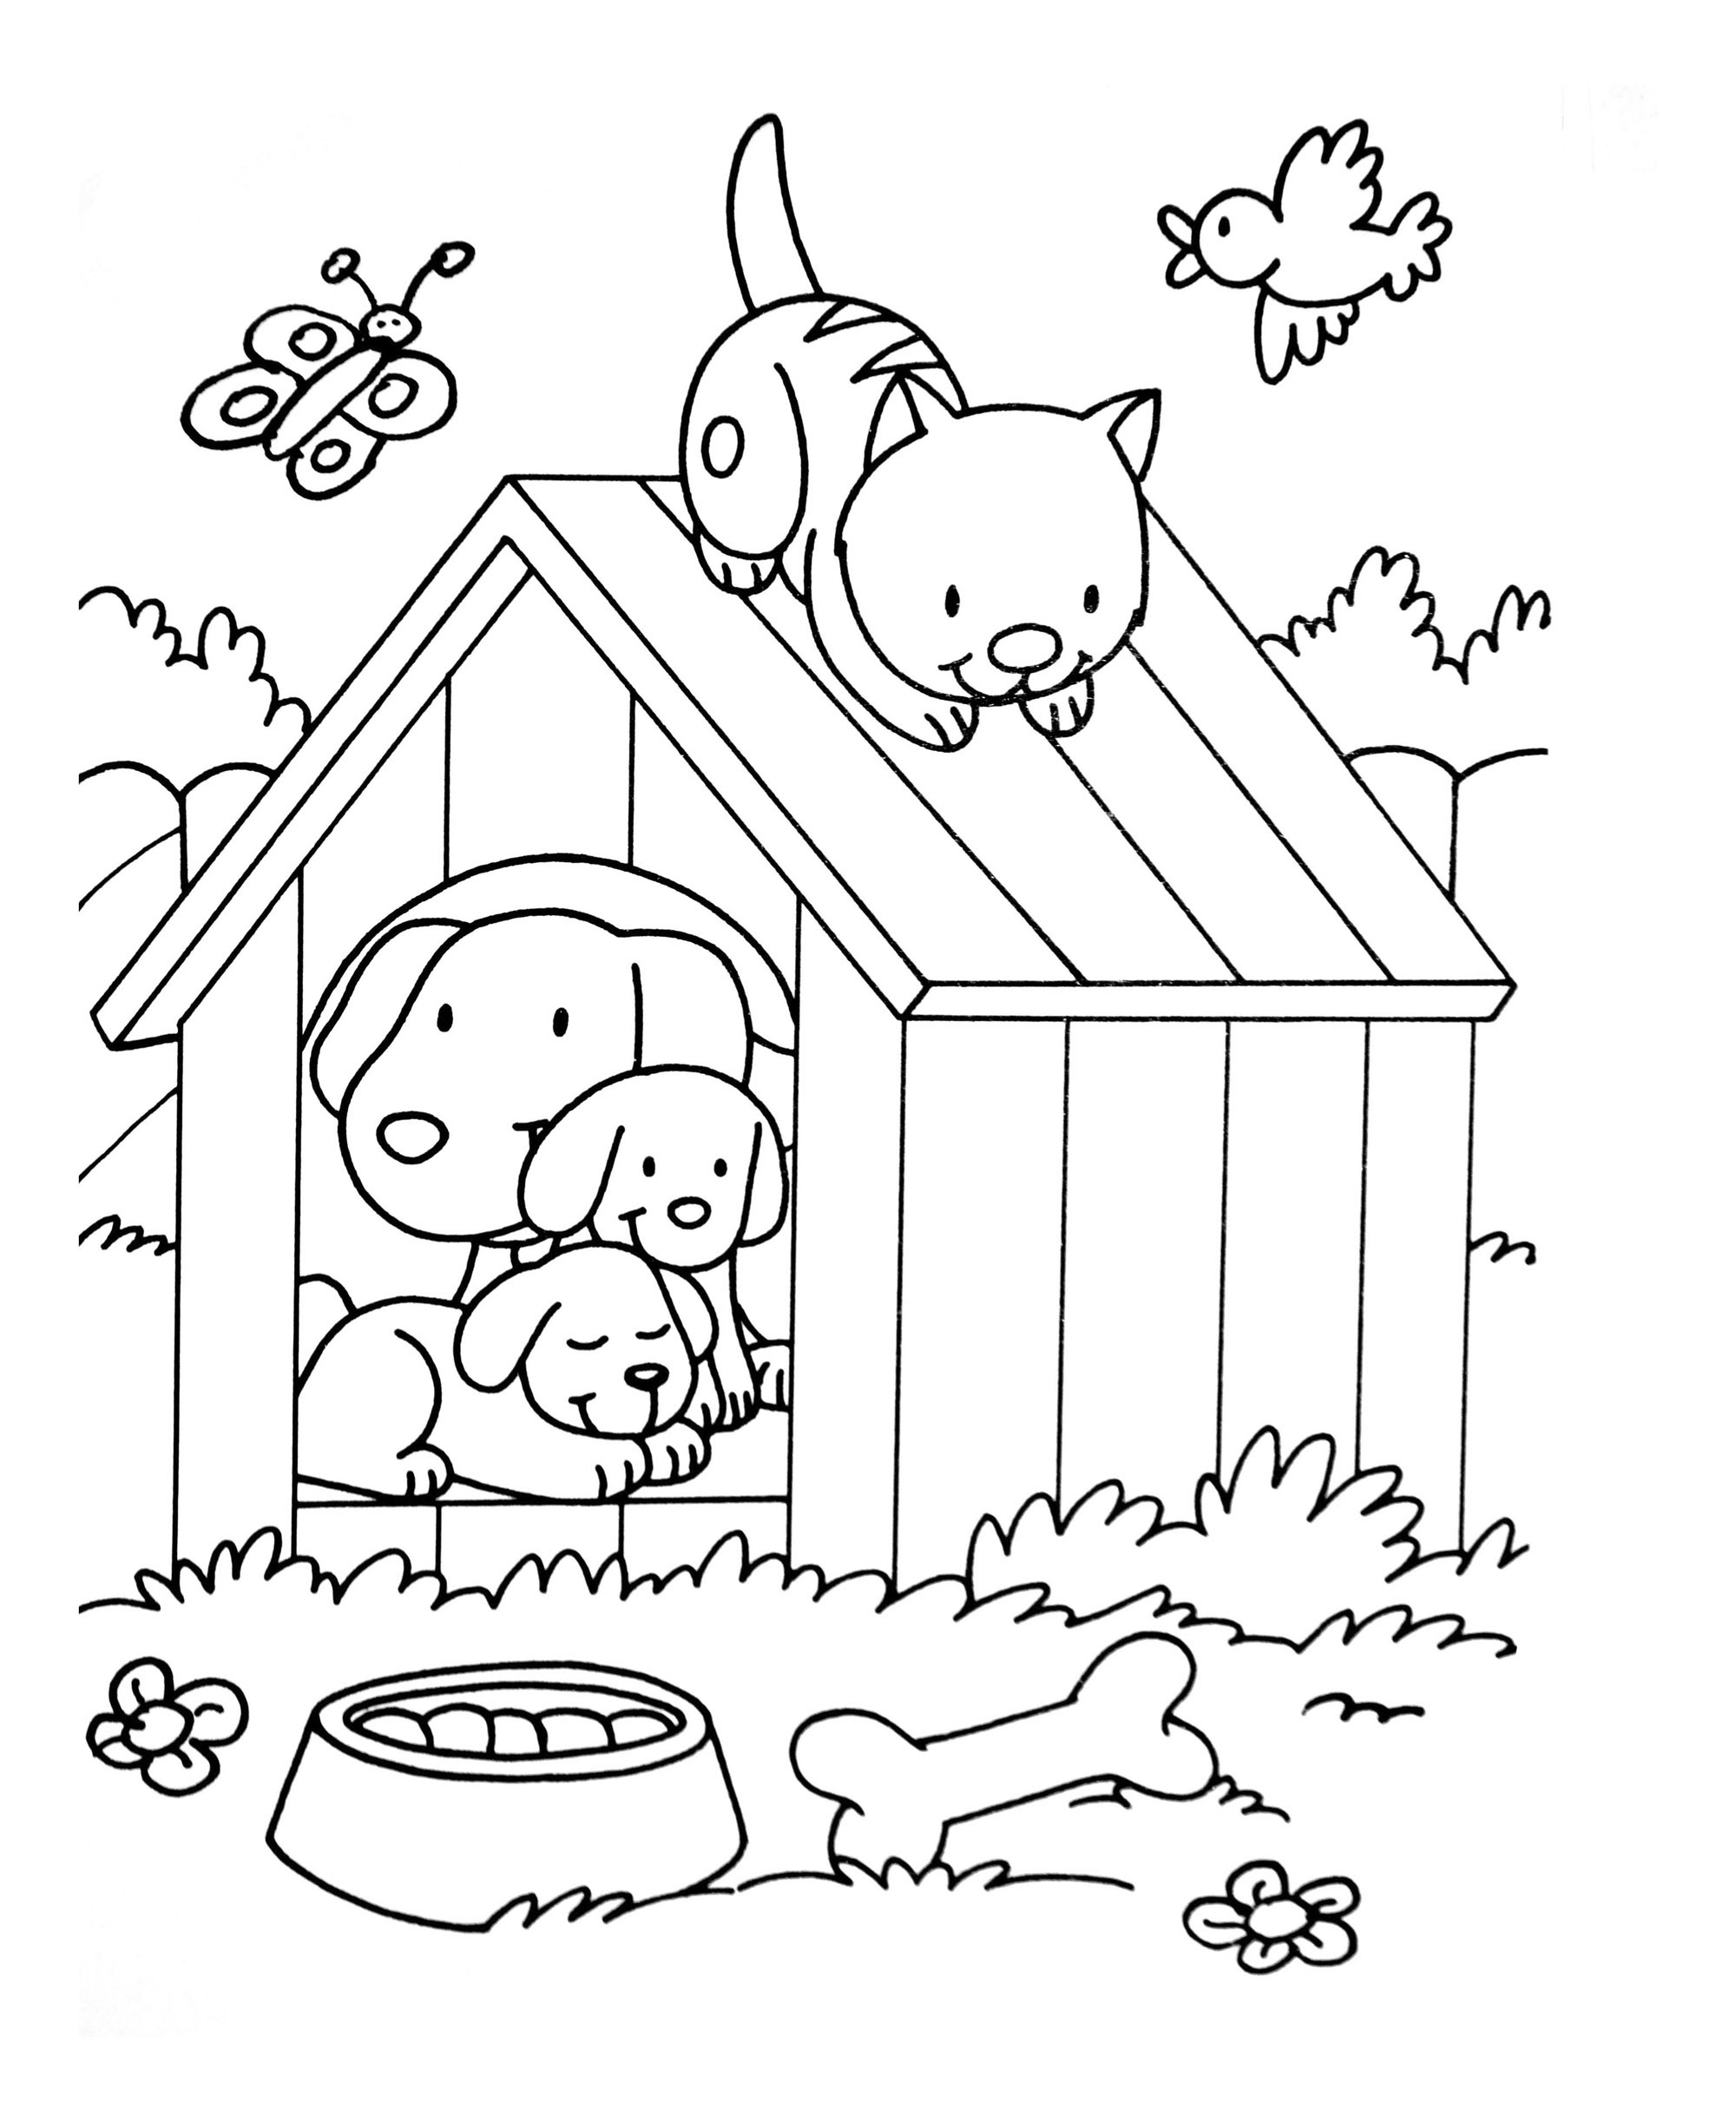 Dog Cat Birdjpg Animal Coloring Pages For Kids To Print Color